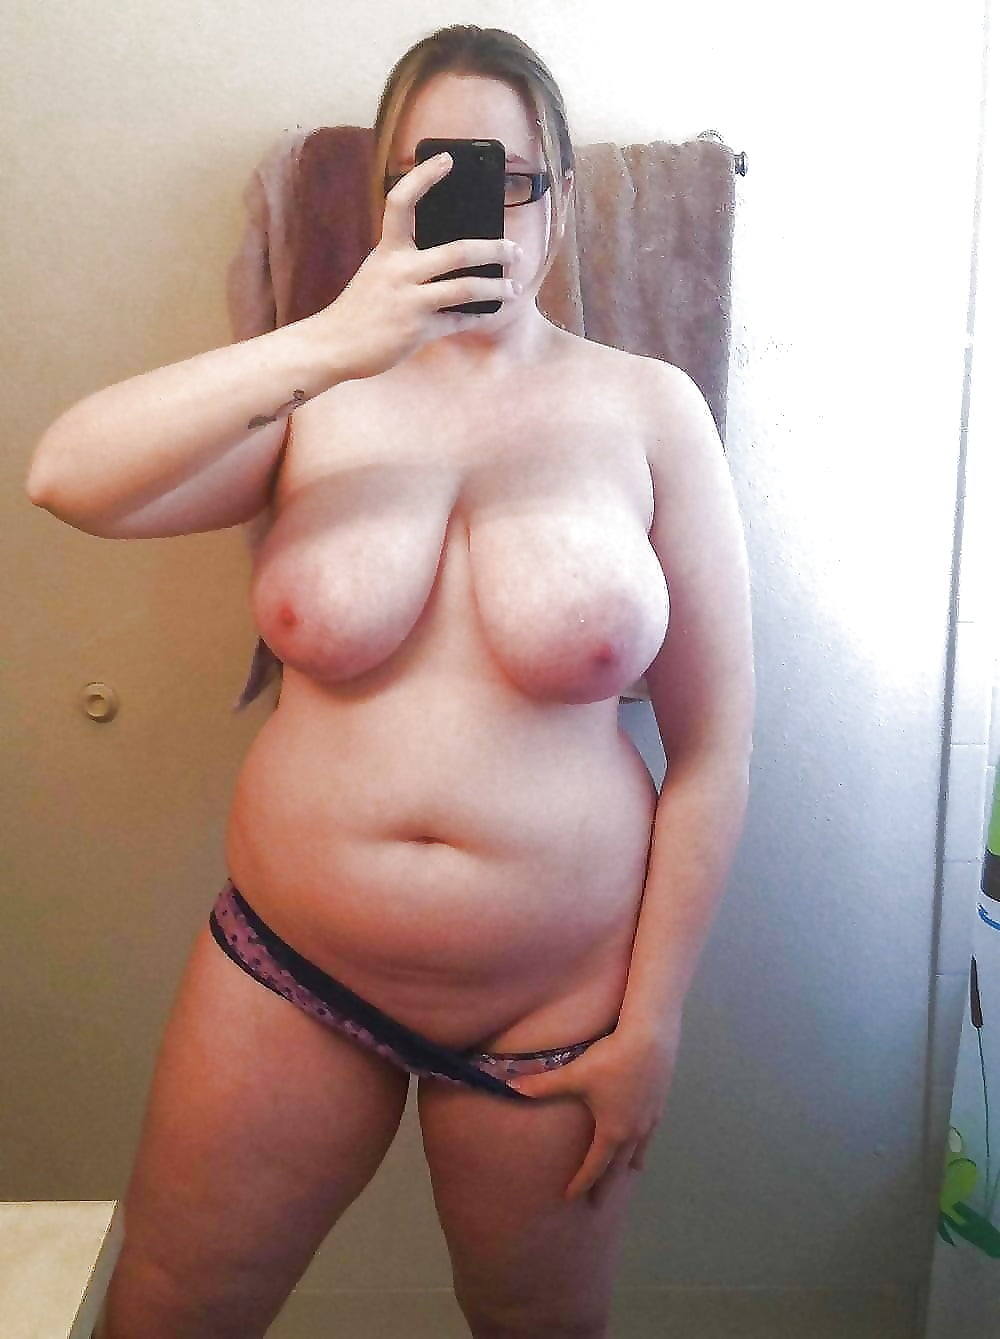 Naked Self Pics Of Girls Self Shot